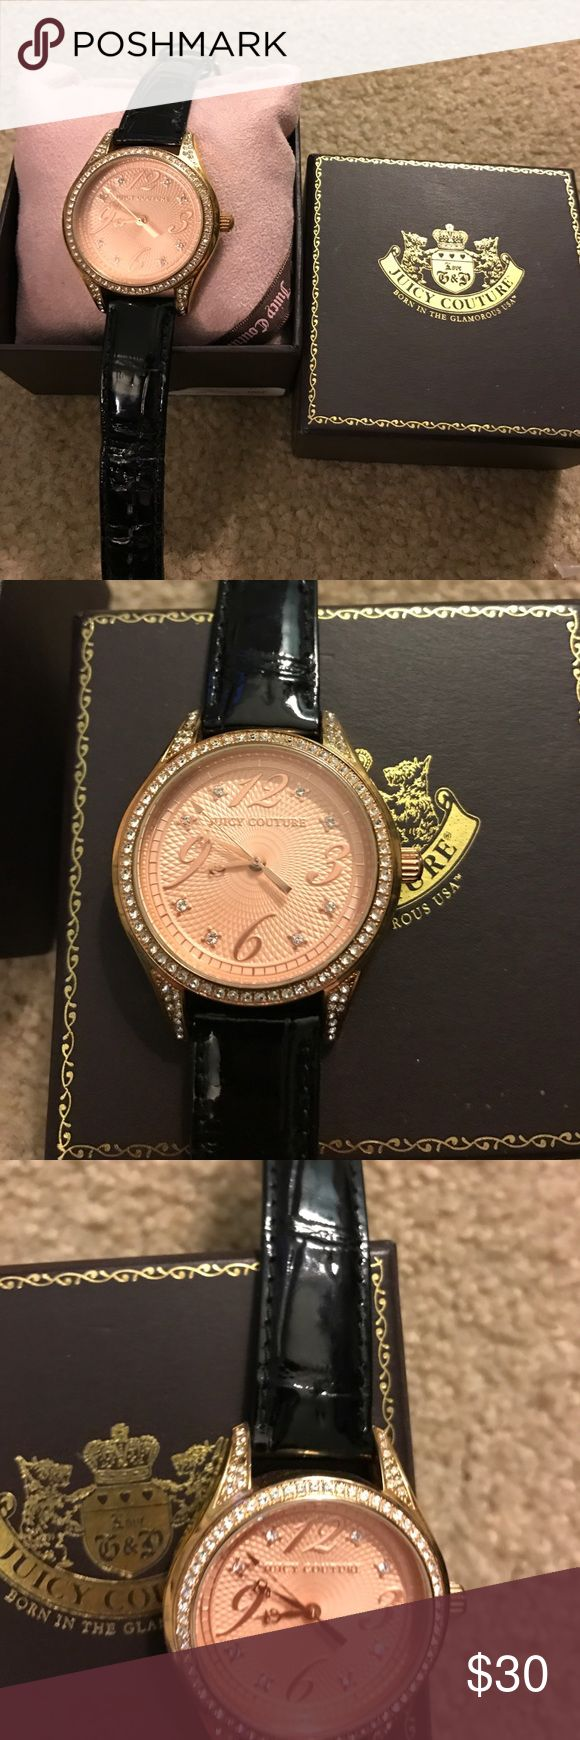 Rose gold juicy couture watch NEEDS battery. Juicy couture rhinestone watch with rose gold face plate. NEEDS NEW BATTERY but works fine. Juicy Couture Accessories Watches